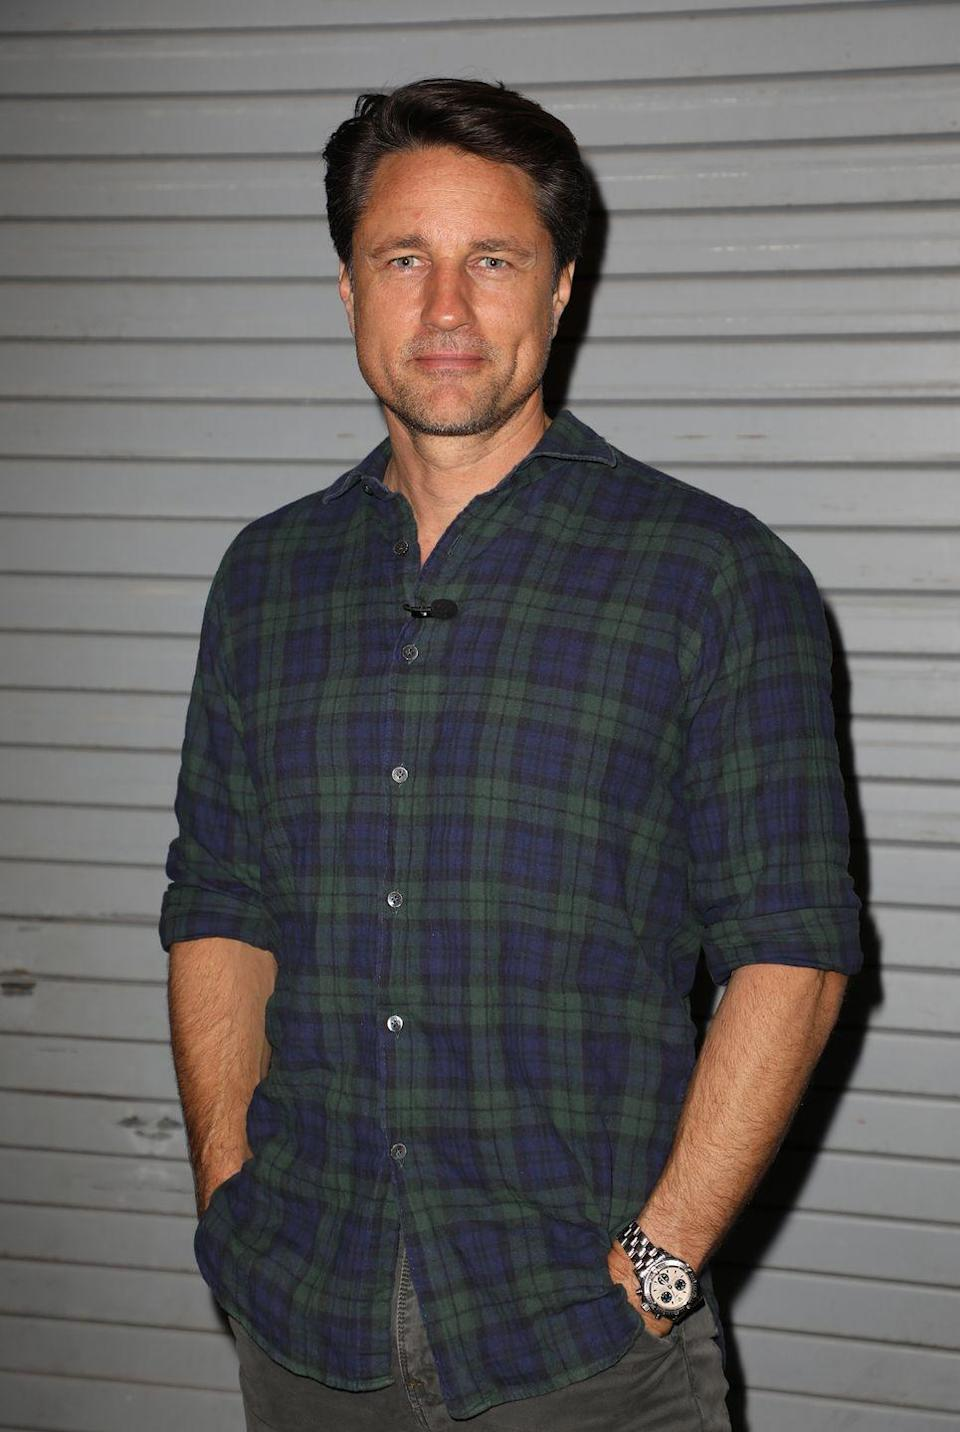 <p>Martin Henderson plays Jack, the charming owner of Virgin River's only bar and restaurant. Jack is a former marine who's battling PTSD and, like Mel, moved to Virgin River years prior looking for a fresh start. He tries hard not to get close to anyone—but Jack's outlook on life begins to change after Mel walks into his bar. </p><p>In real life, Martin is a New Zealand actor with credits on <em>Grey's Anatomy</em>, <em>The Ring</em>, and more. </p>